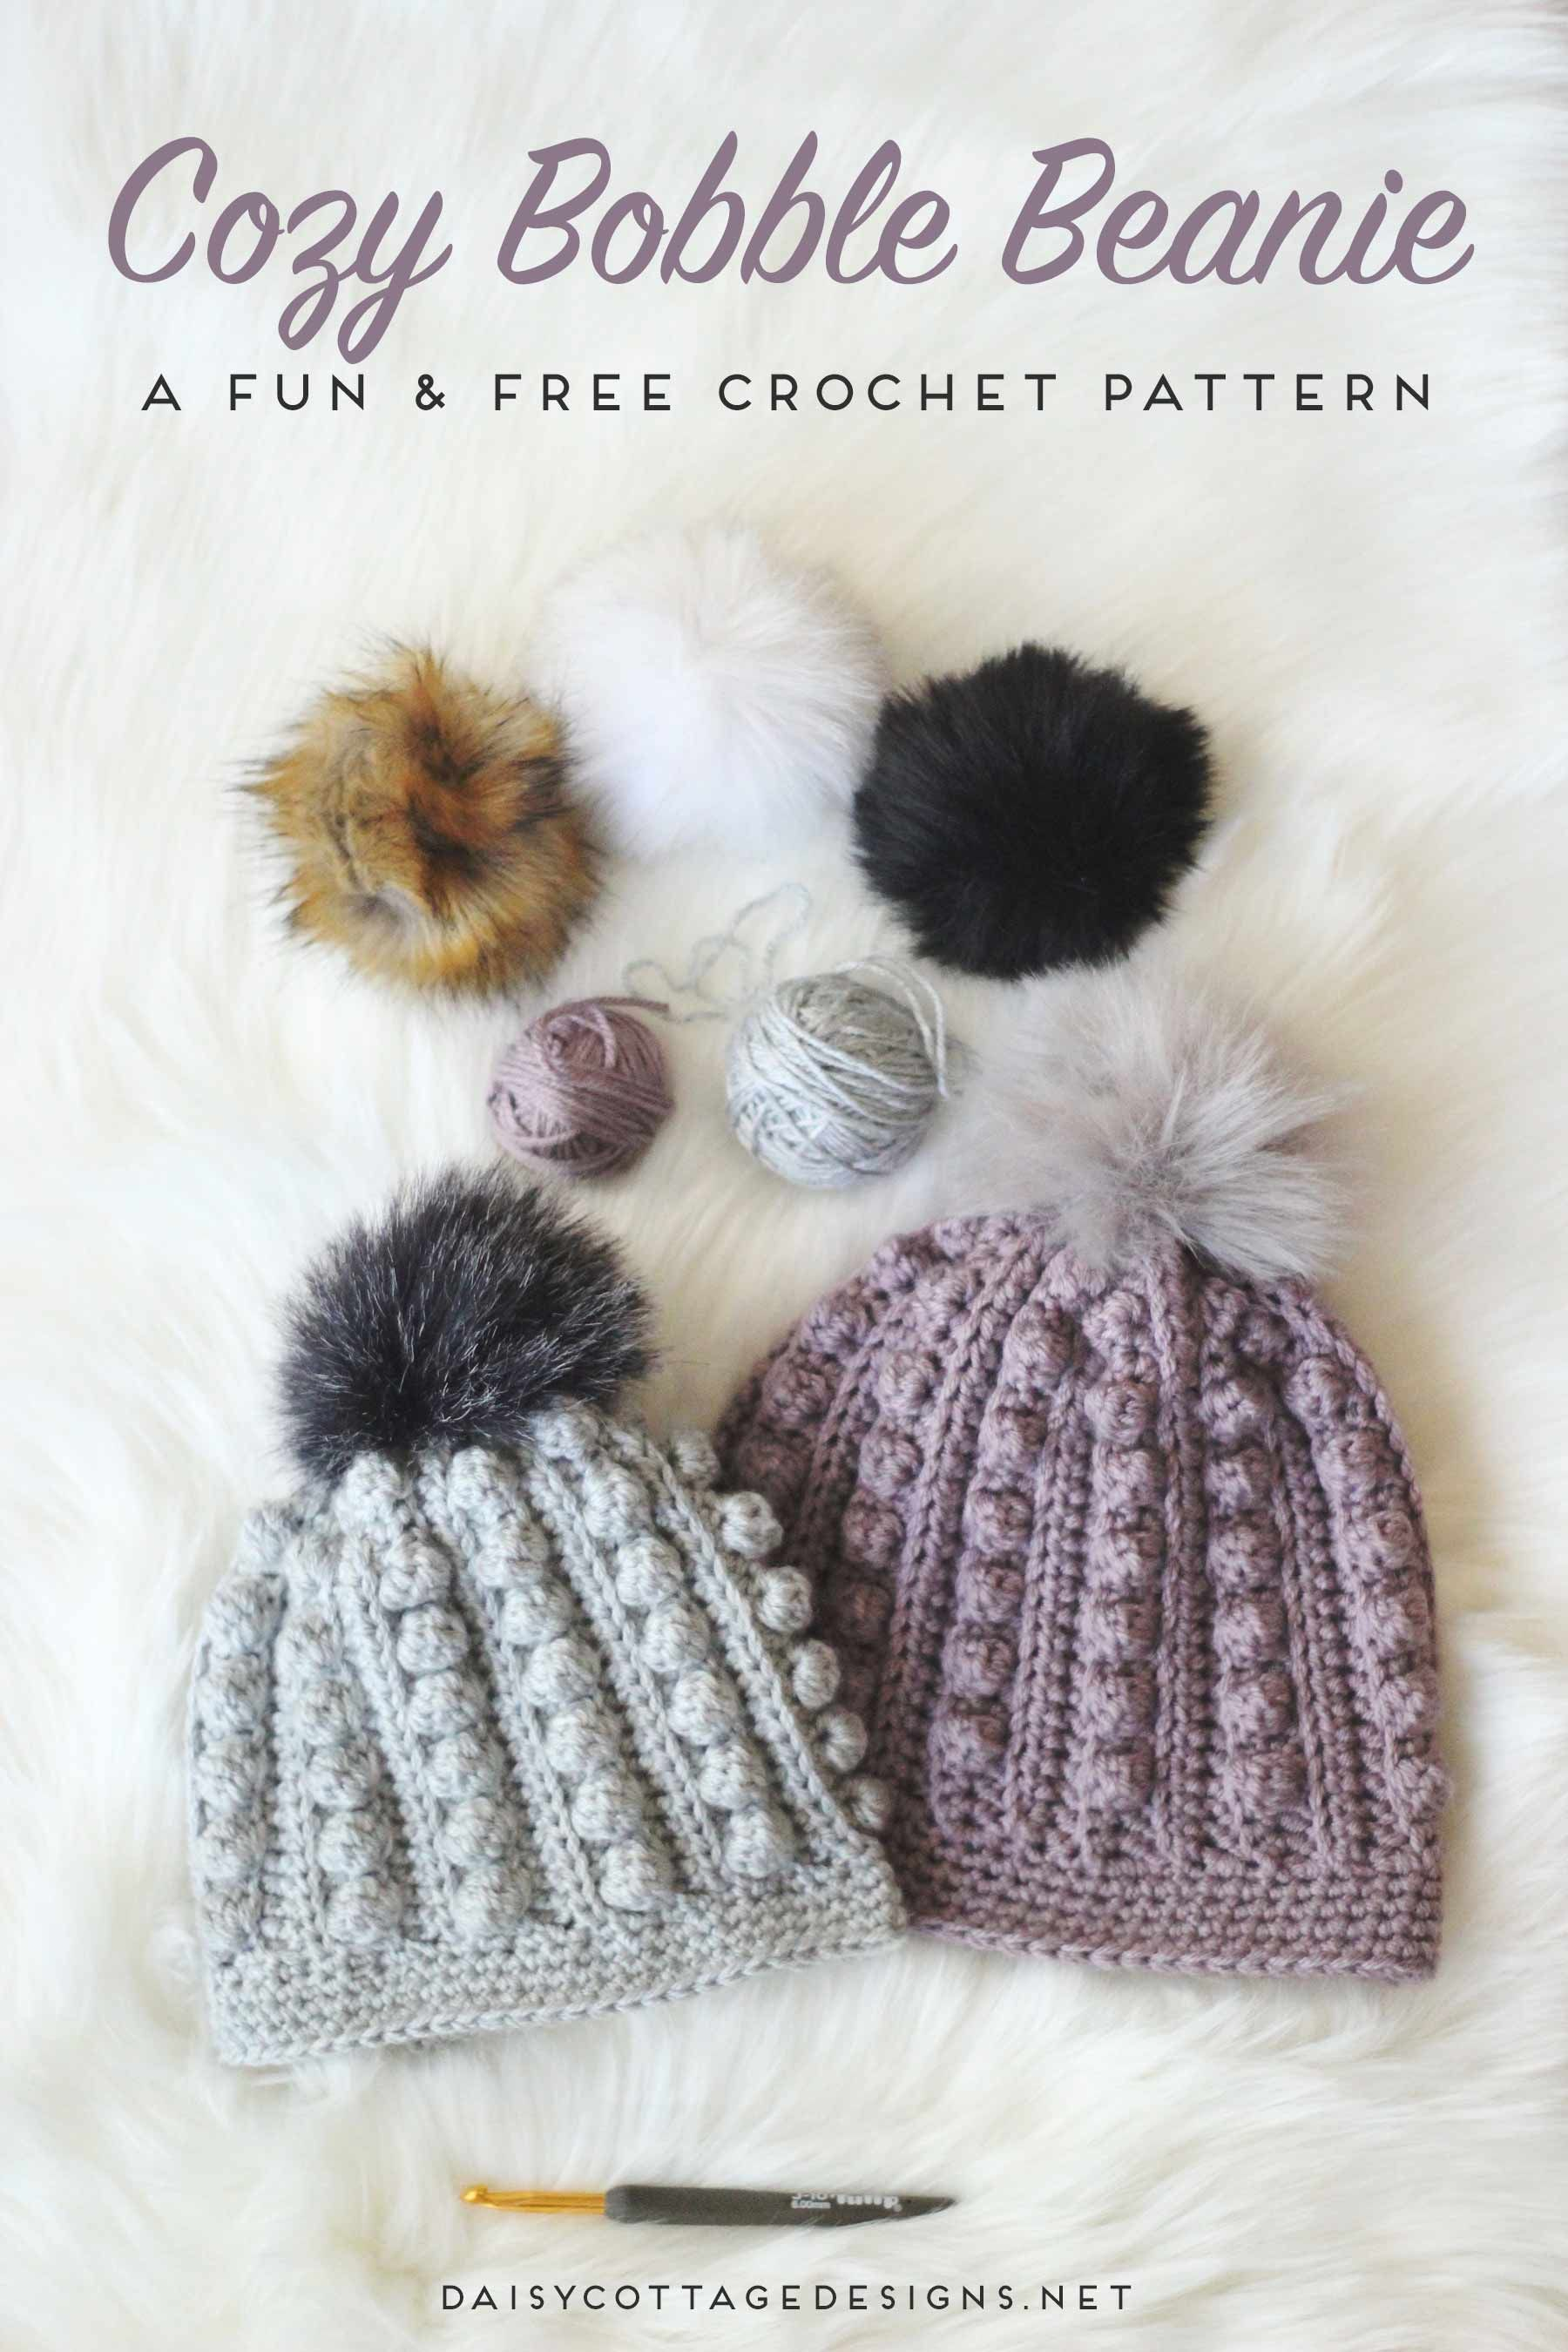 Use this free bobble beanie crochet pattern to create an adorable crochet  hat for anyone on your gift list. Cozy and warm 0f557f2e6dd